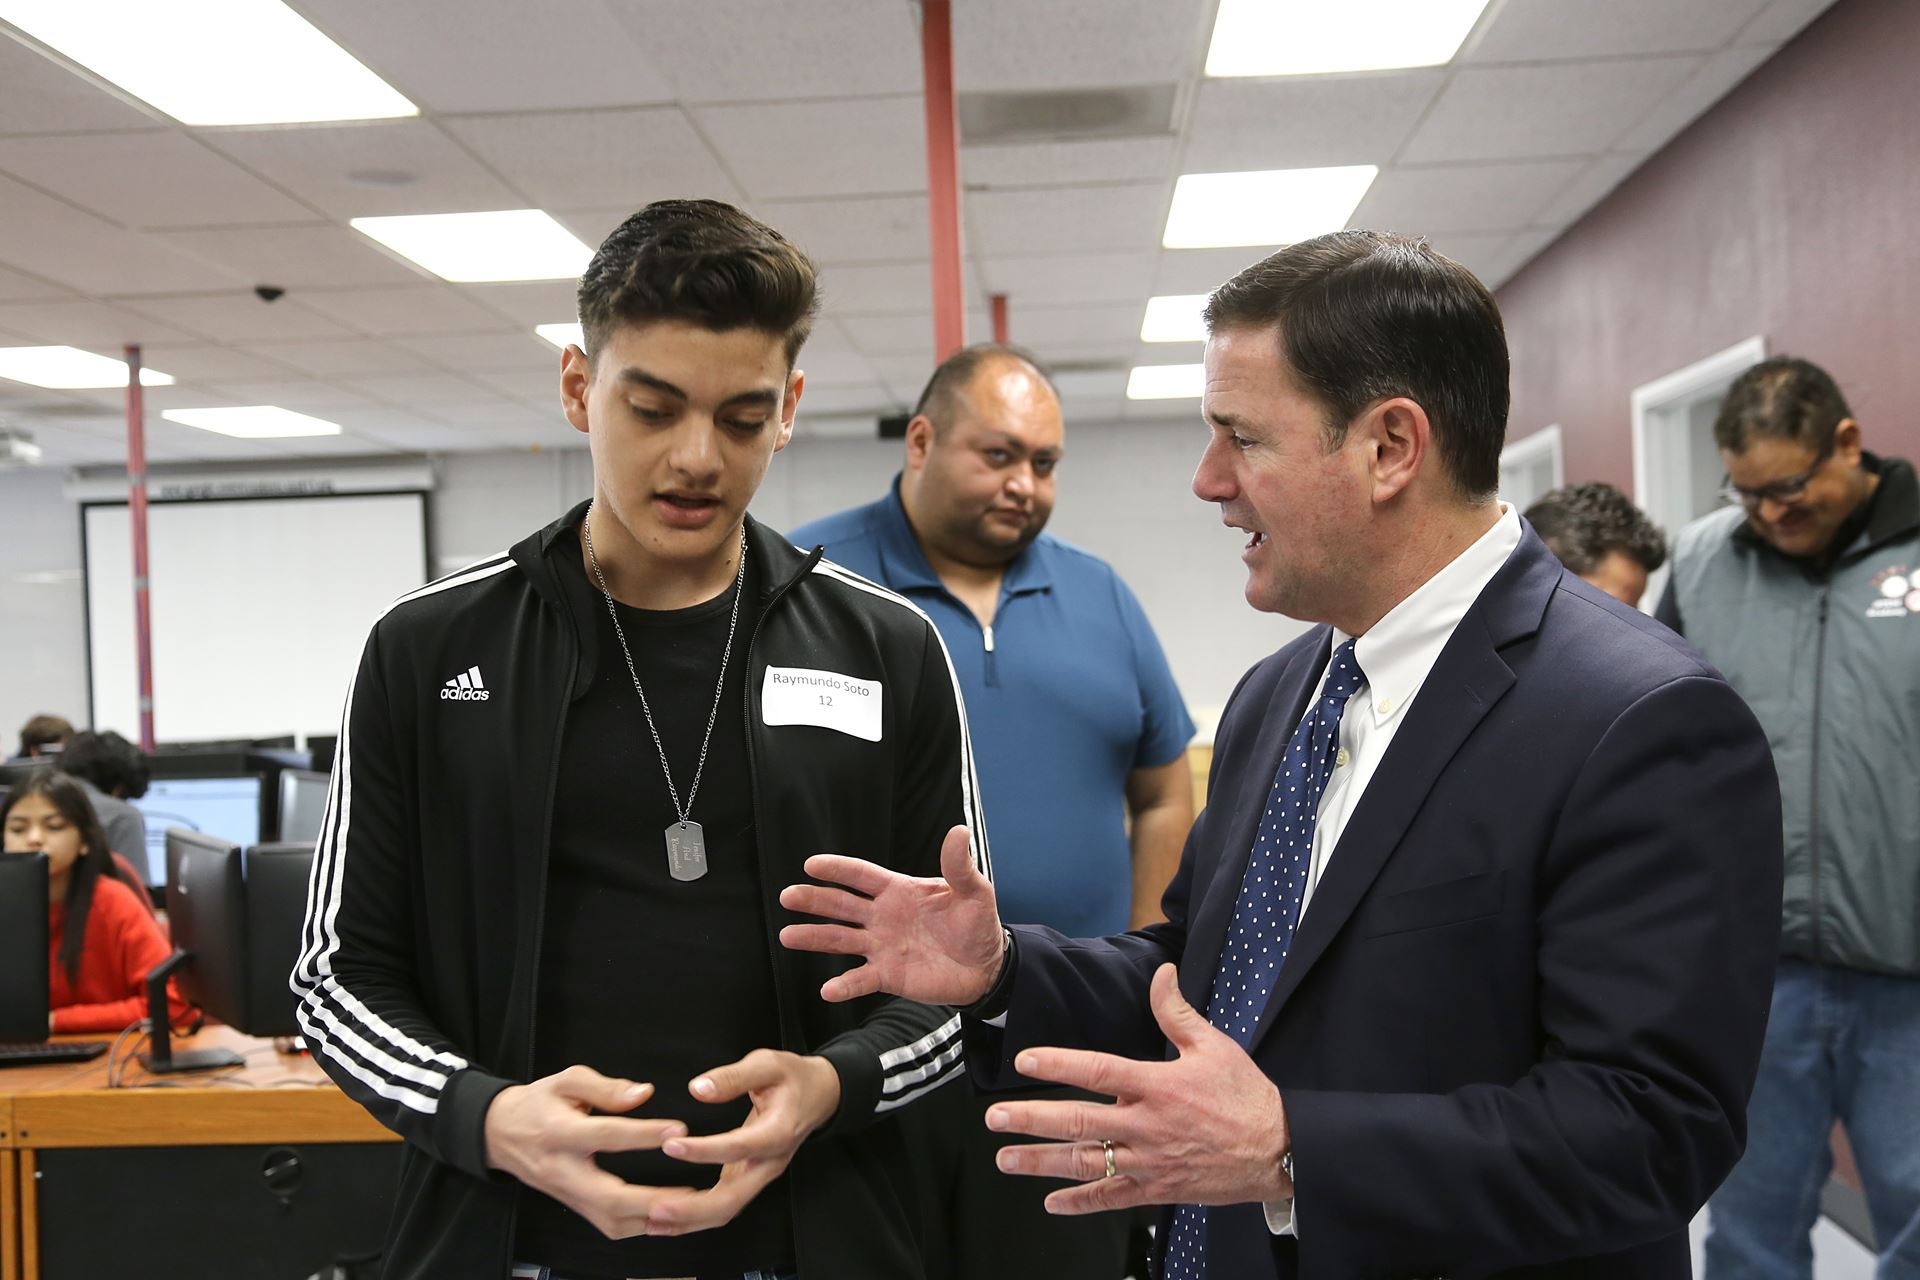 Governor Ducey Visits Desert View